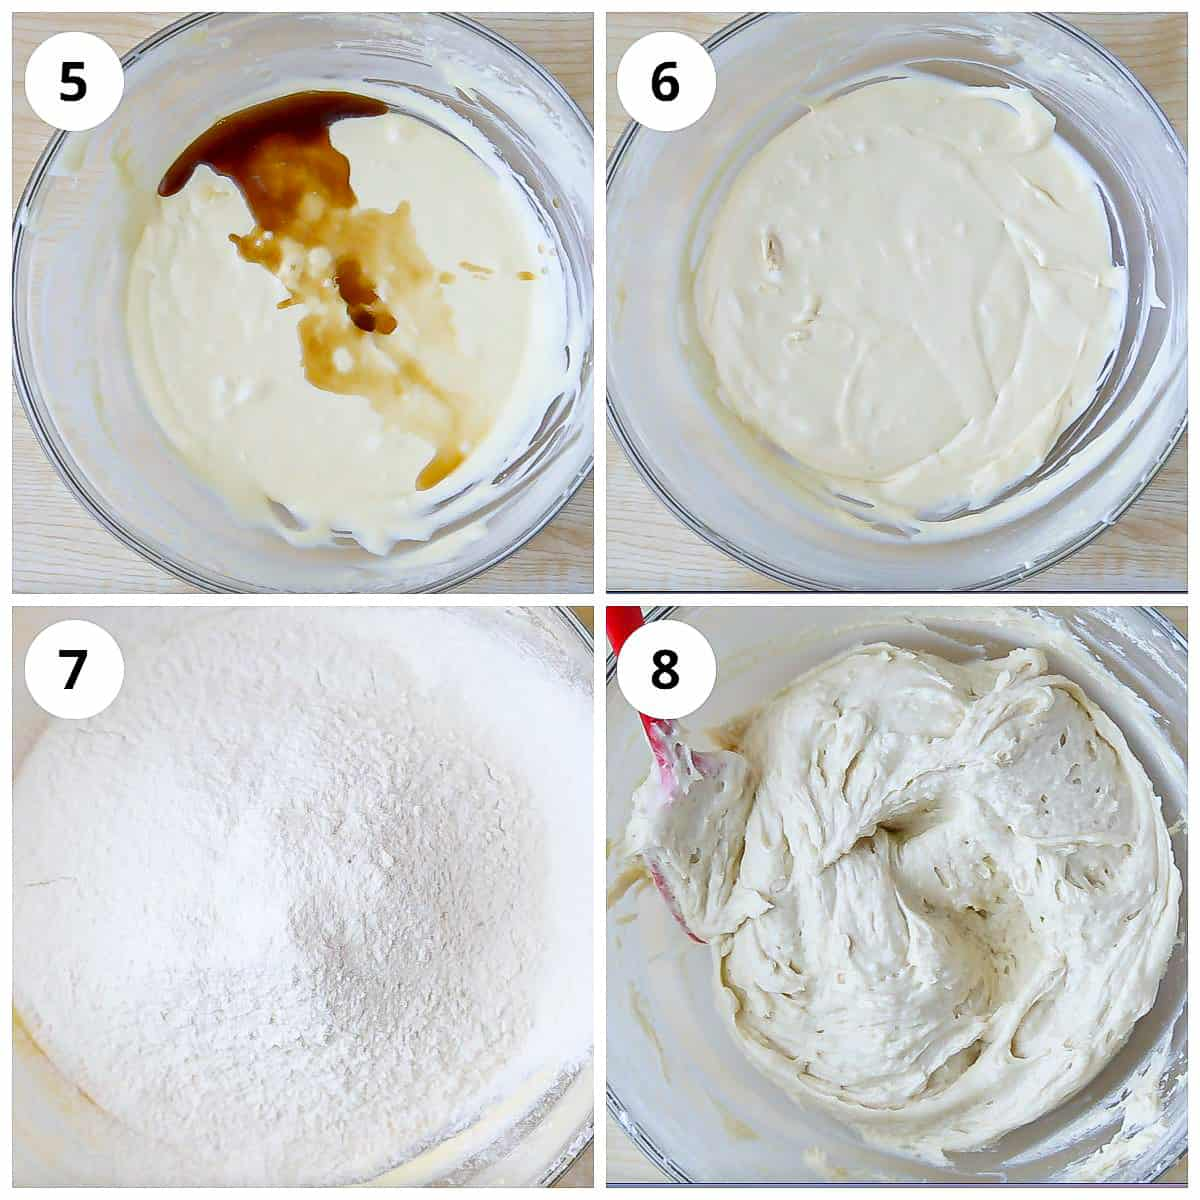 Steps for mixing wet and dry ingredients for making eggless vanilla sponge cake batter